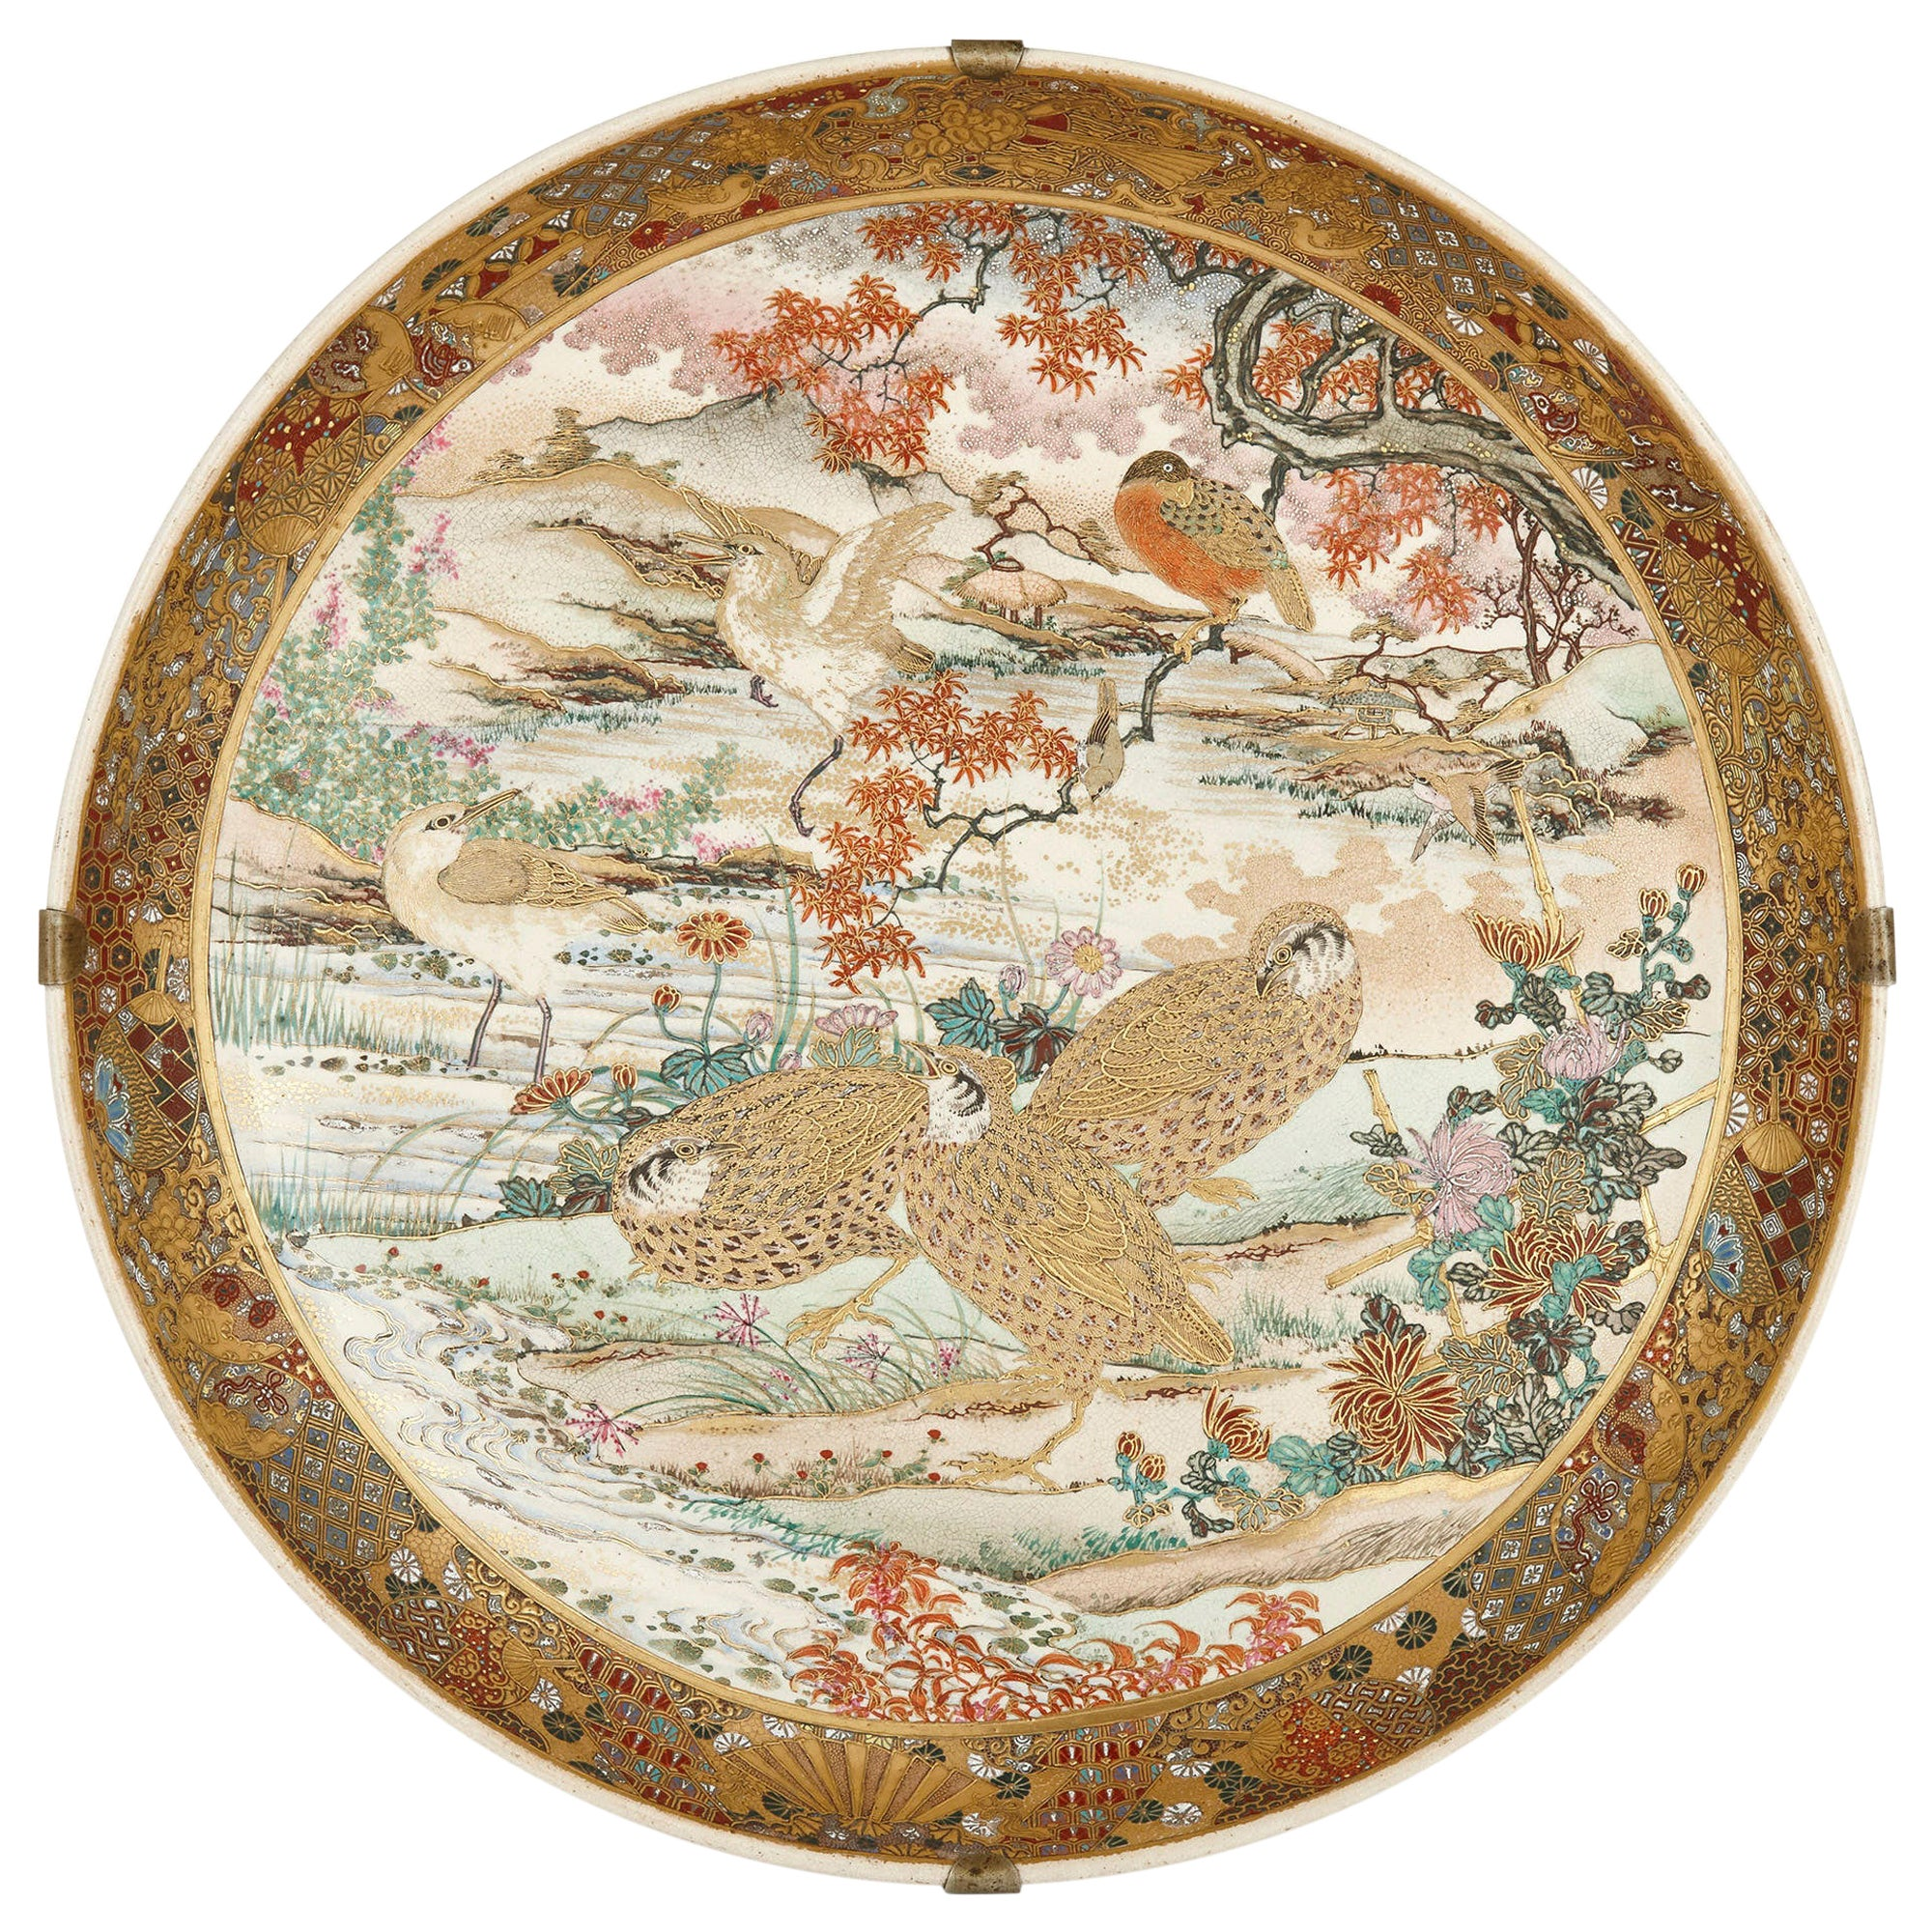 Antique Japanese Parcel-Gilt Porcelain Dish